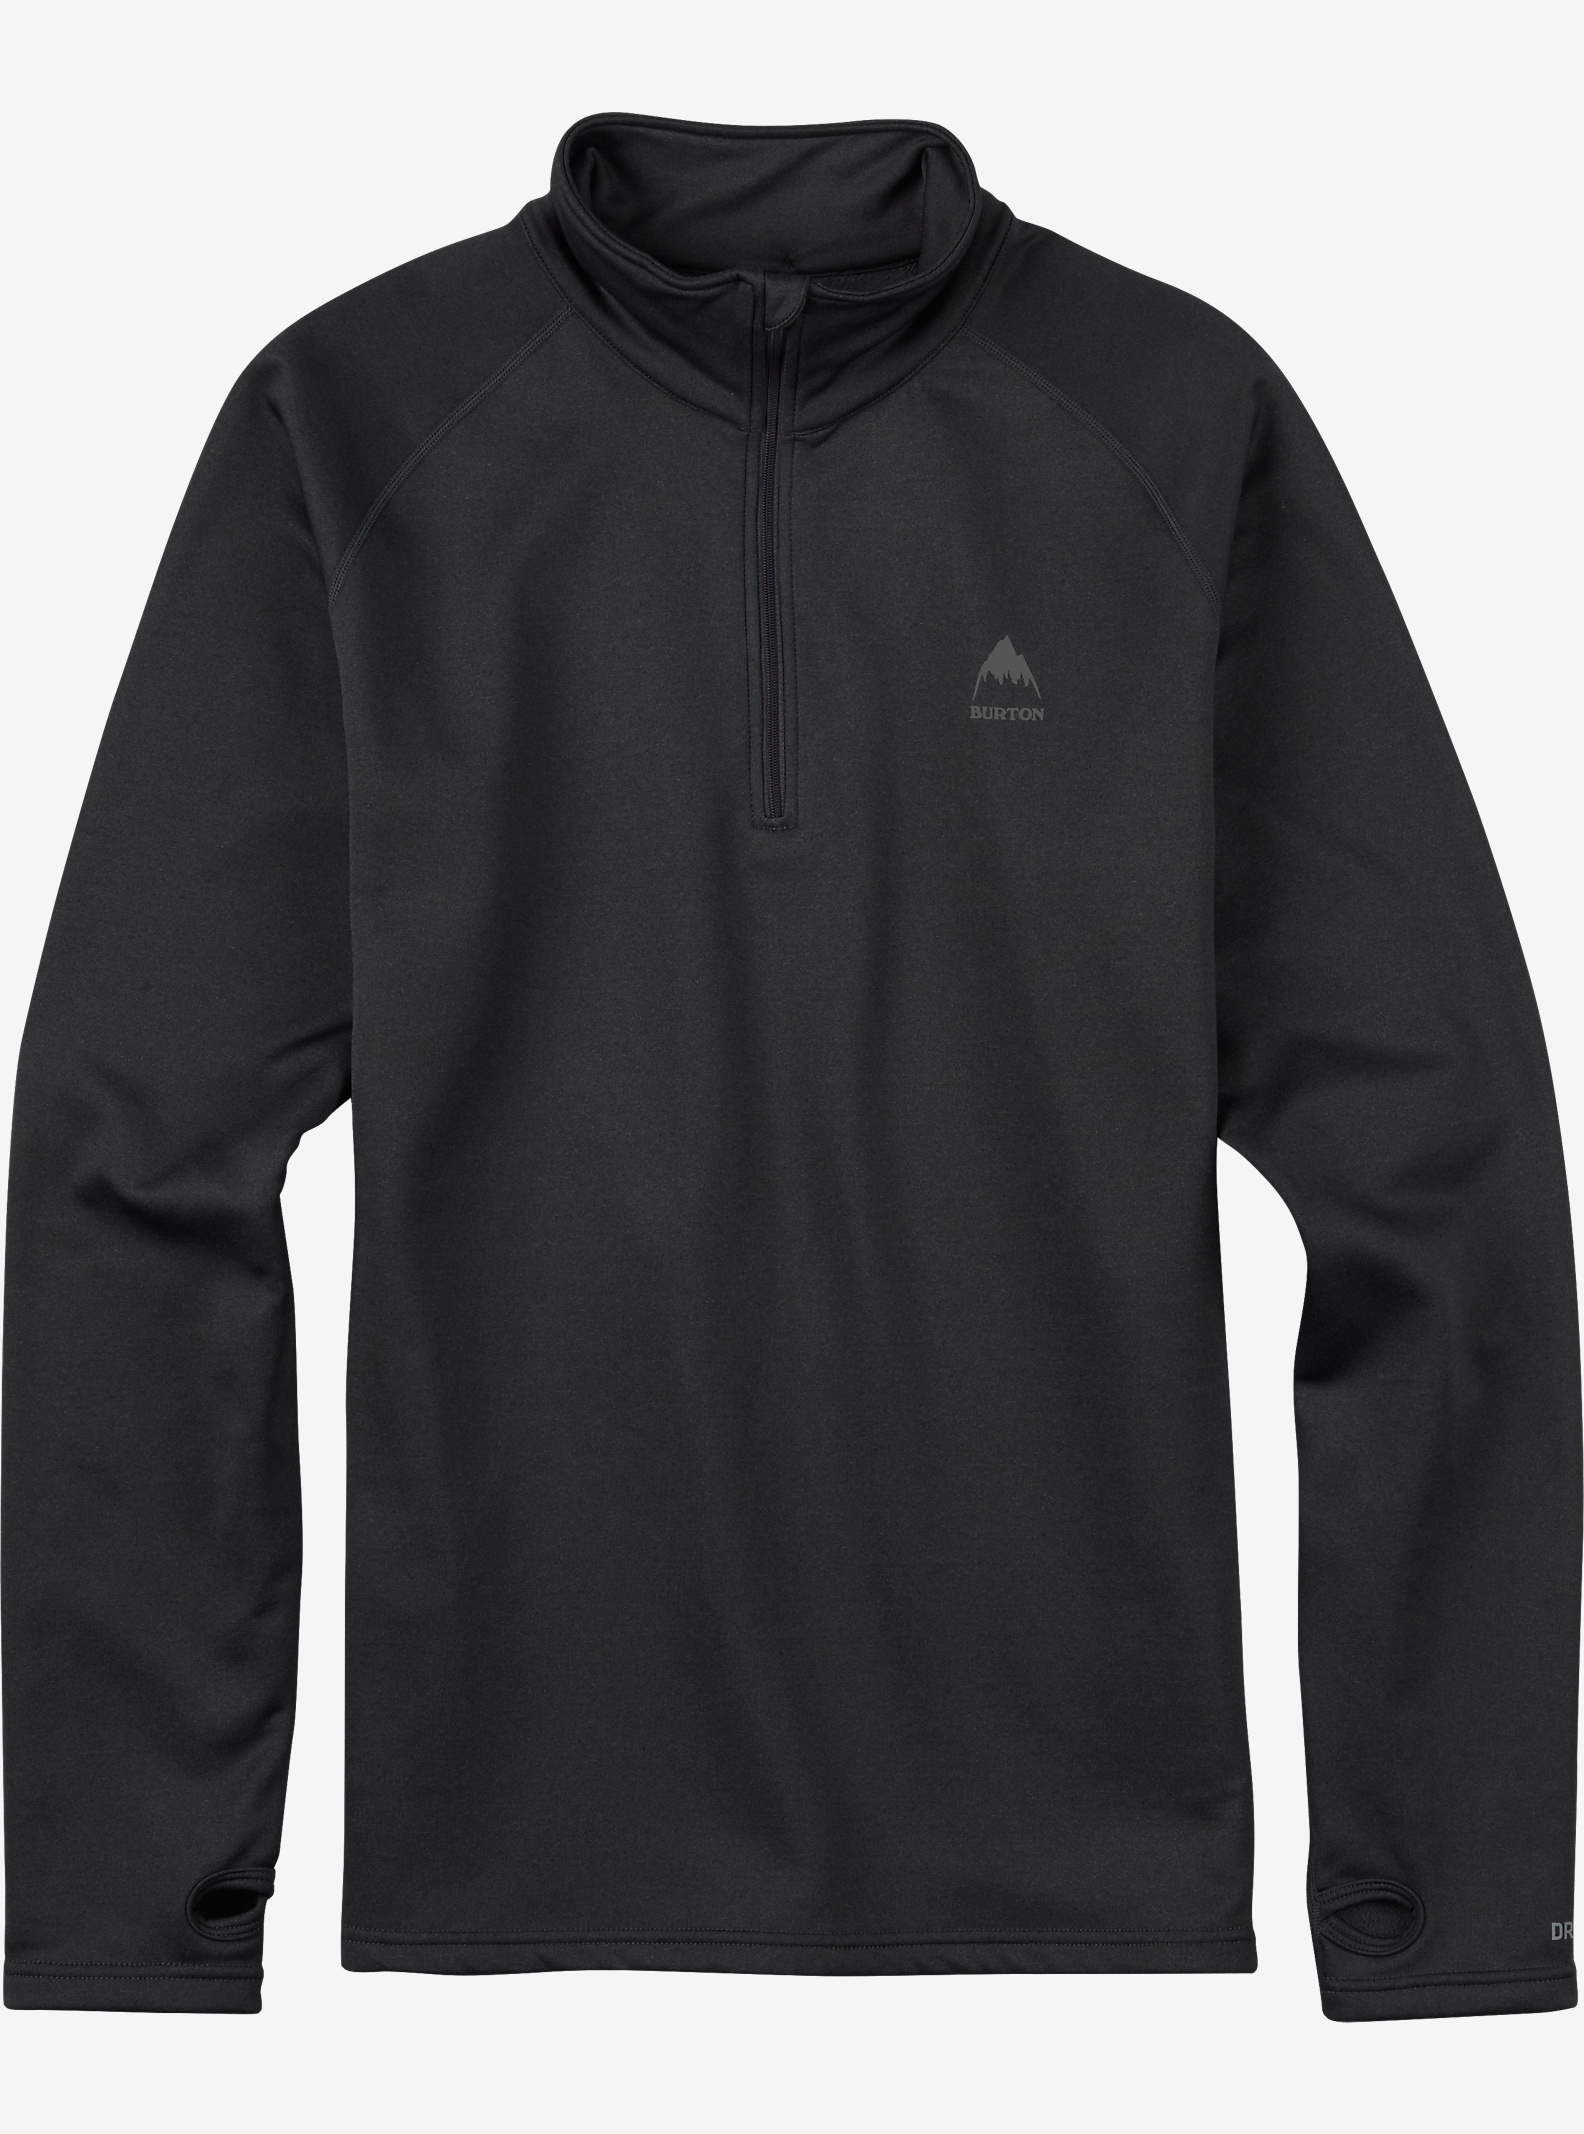 Burton Expedition 1/4 Zip Base Layer shown in Faded Heather